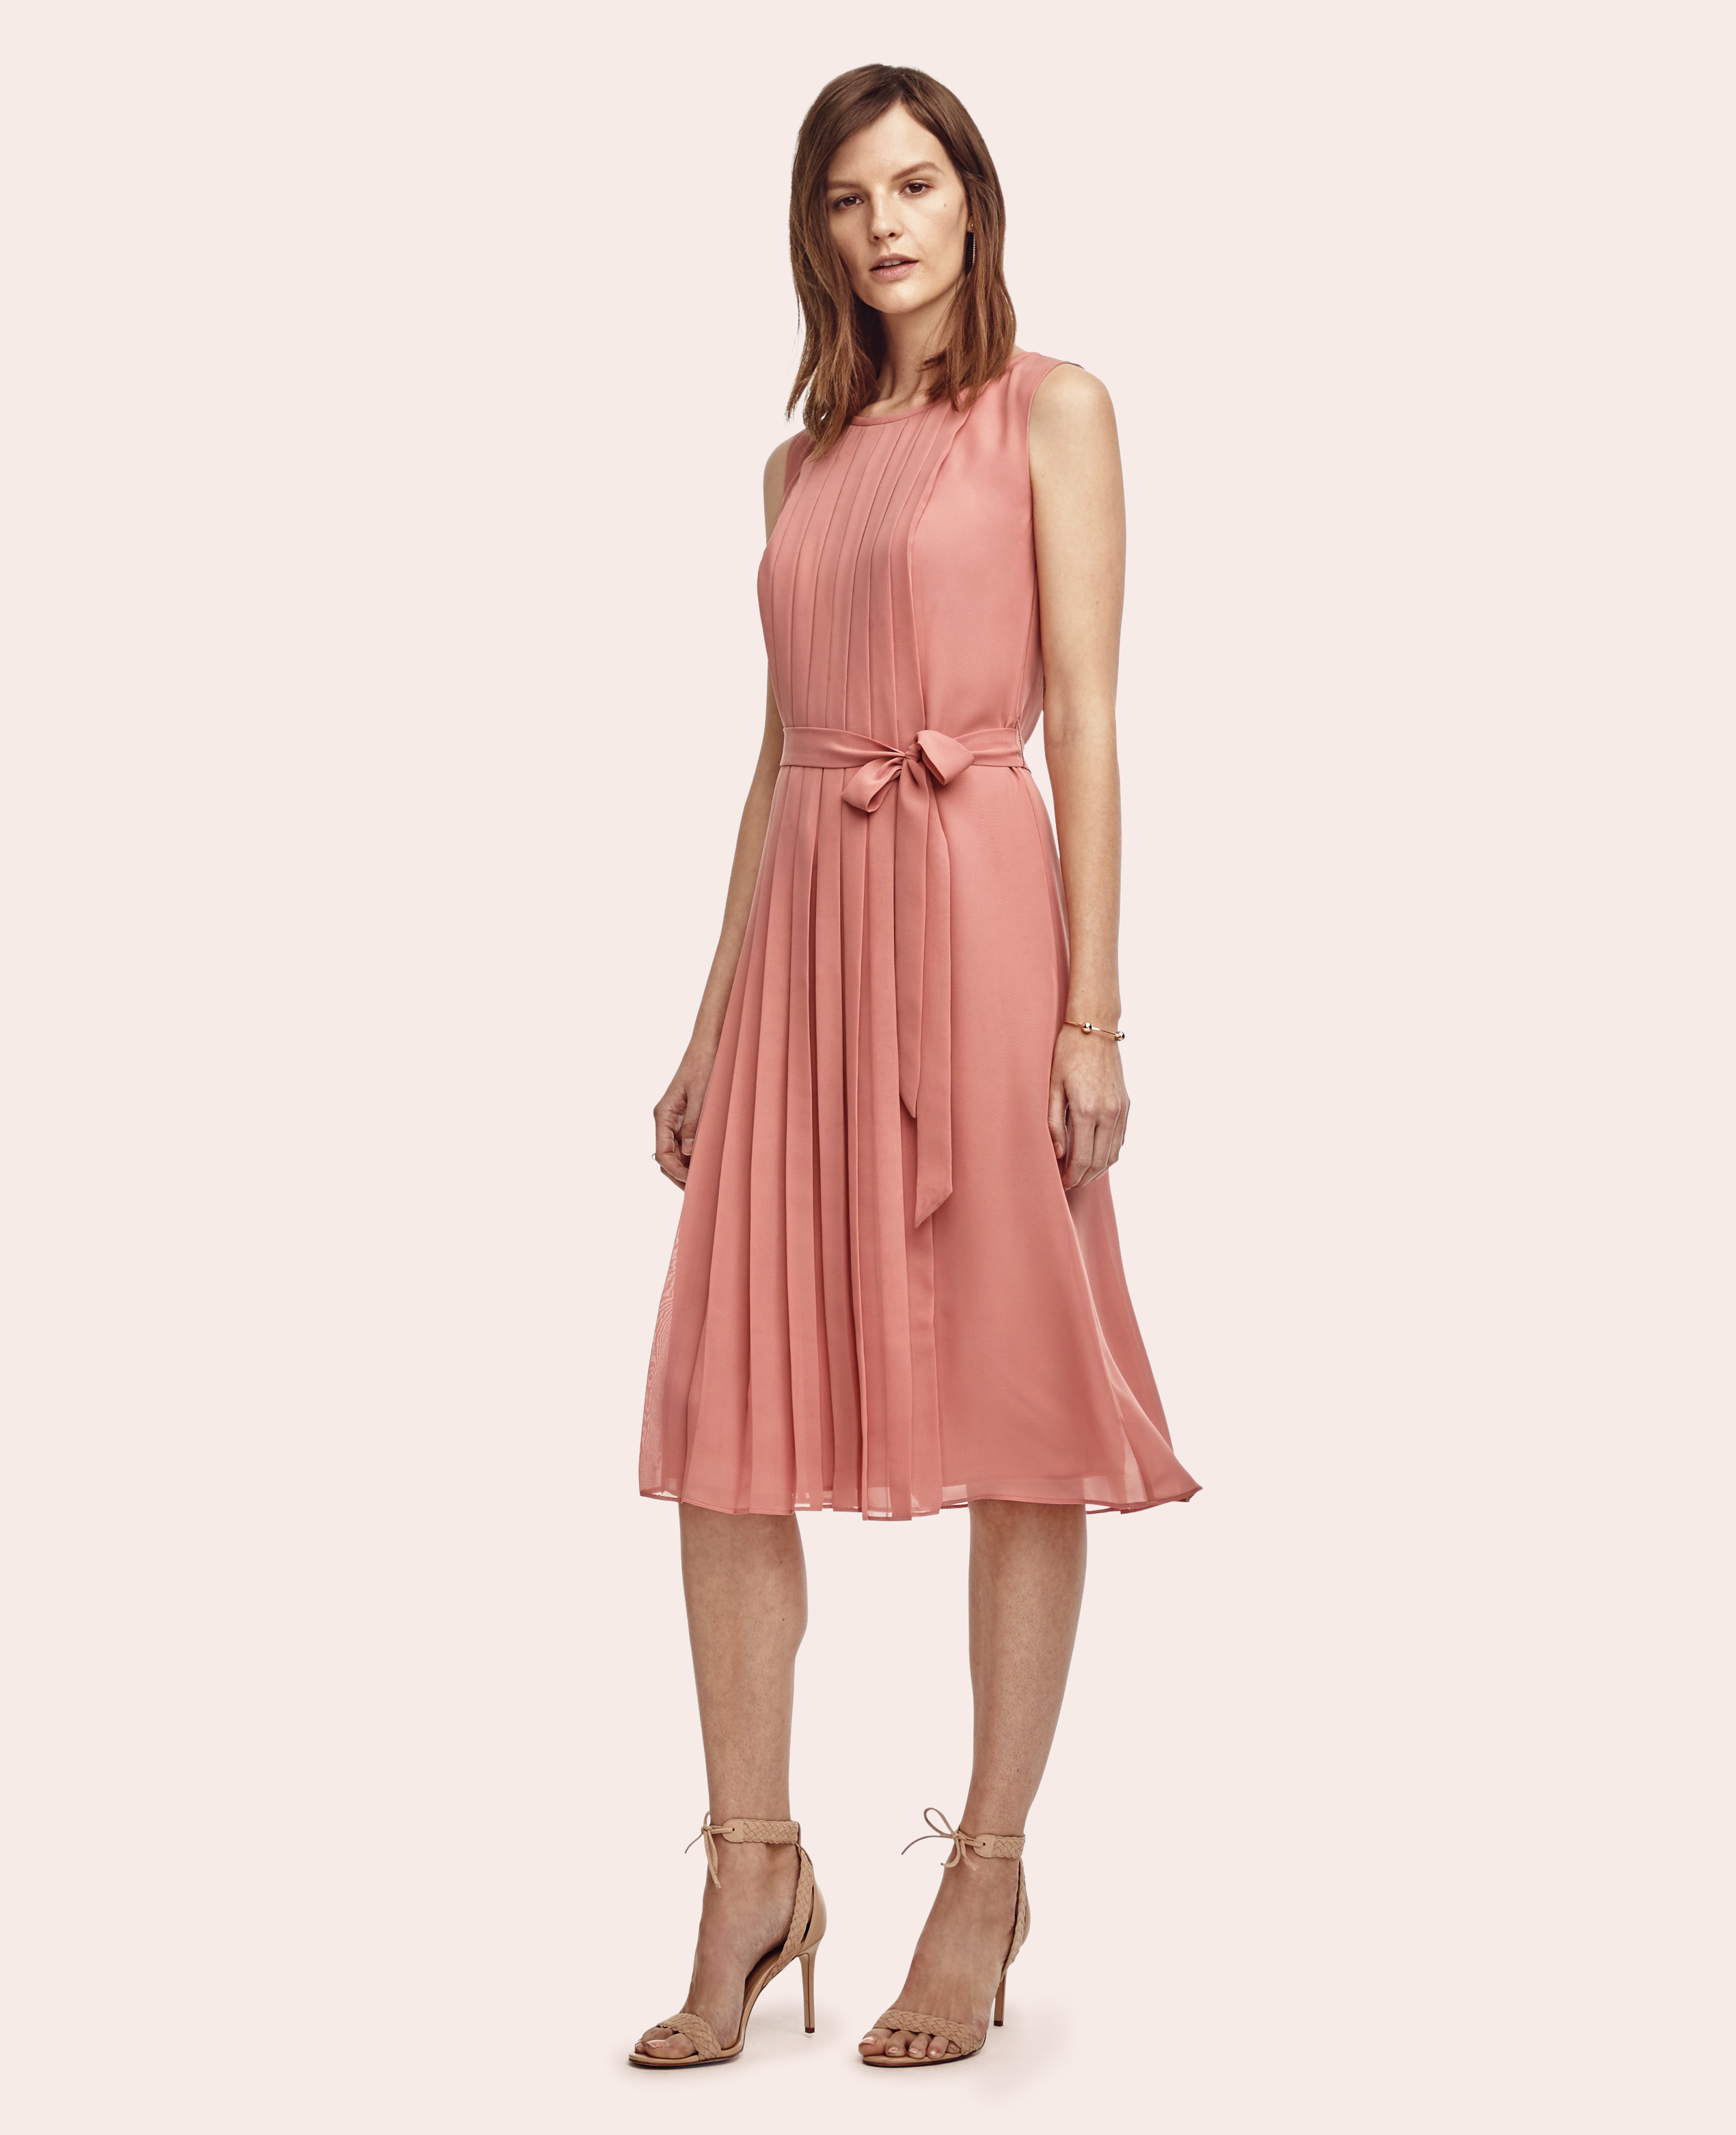 Lyst - Ann Taylor Pleated Belted Midi Dress in Pink